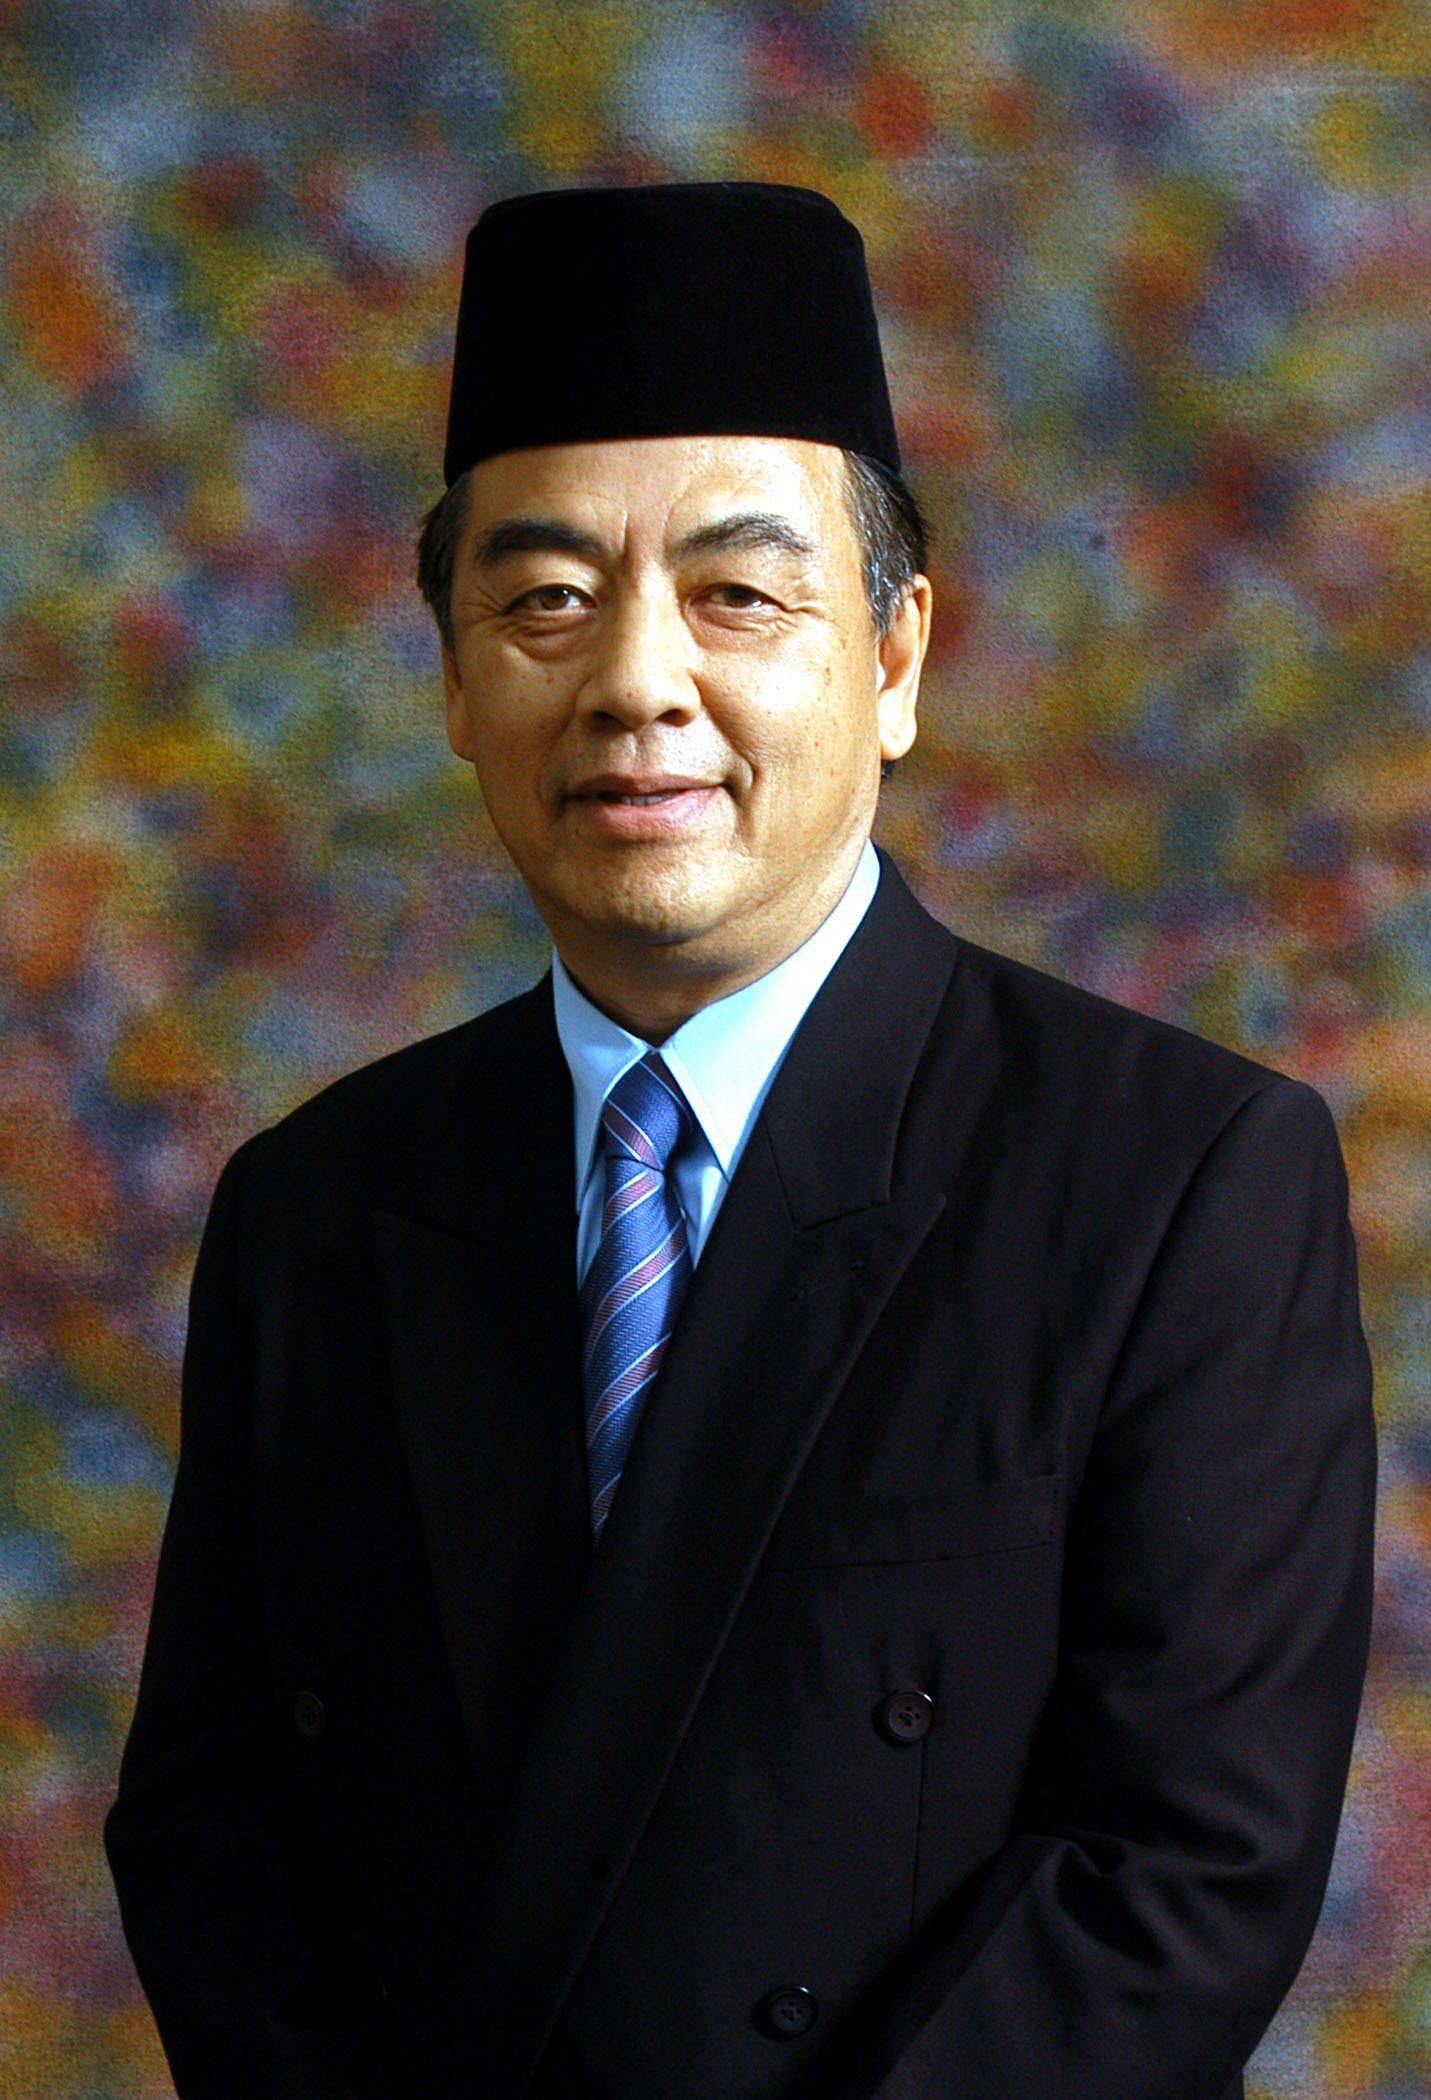 Dato Dr Hj Mat Suny, the new Minister of Energy and Industry. Photo via BruneiResources.com